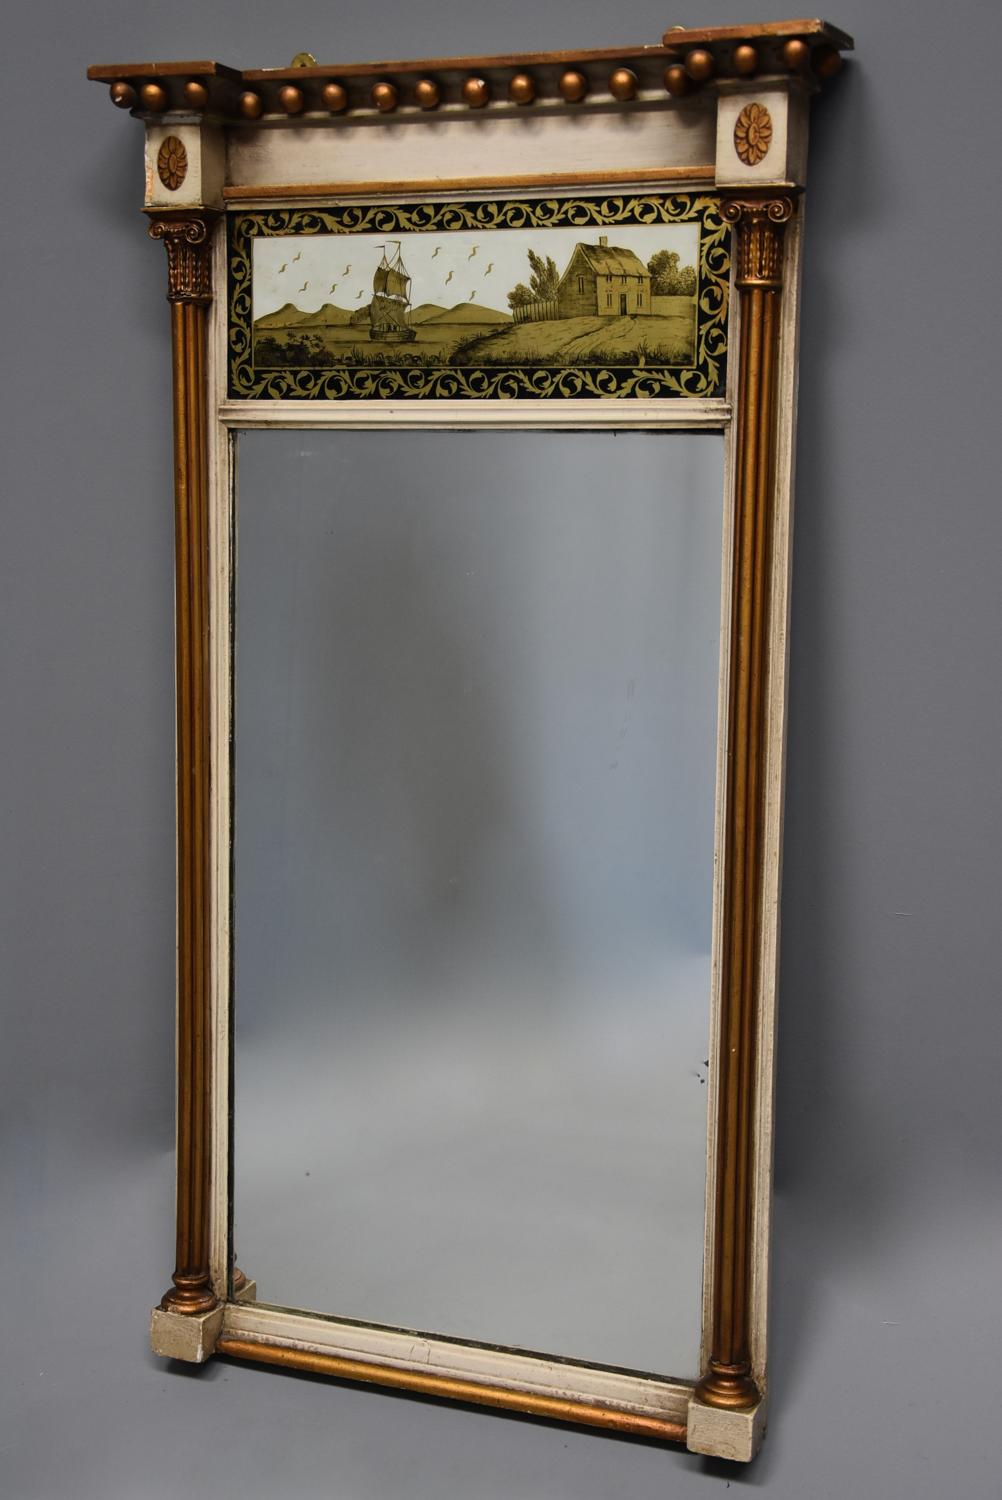 Early 19th century Regency eglomise, gilt and painted pier mirror